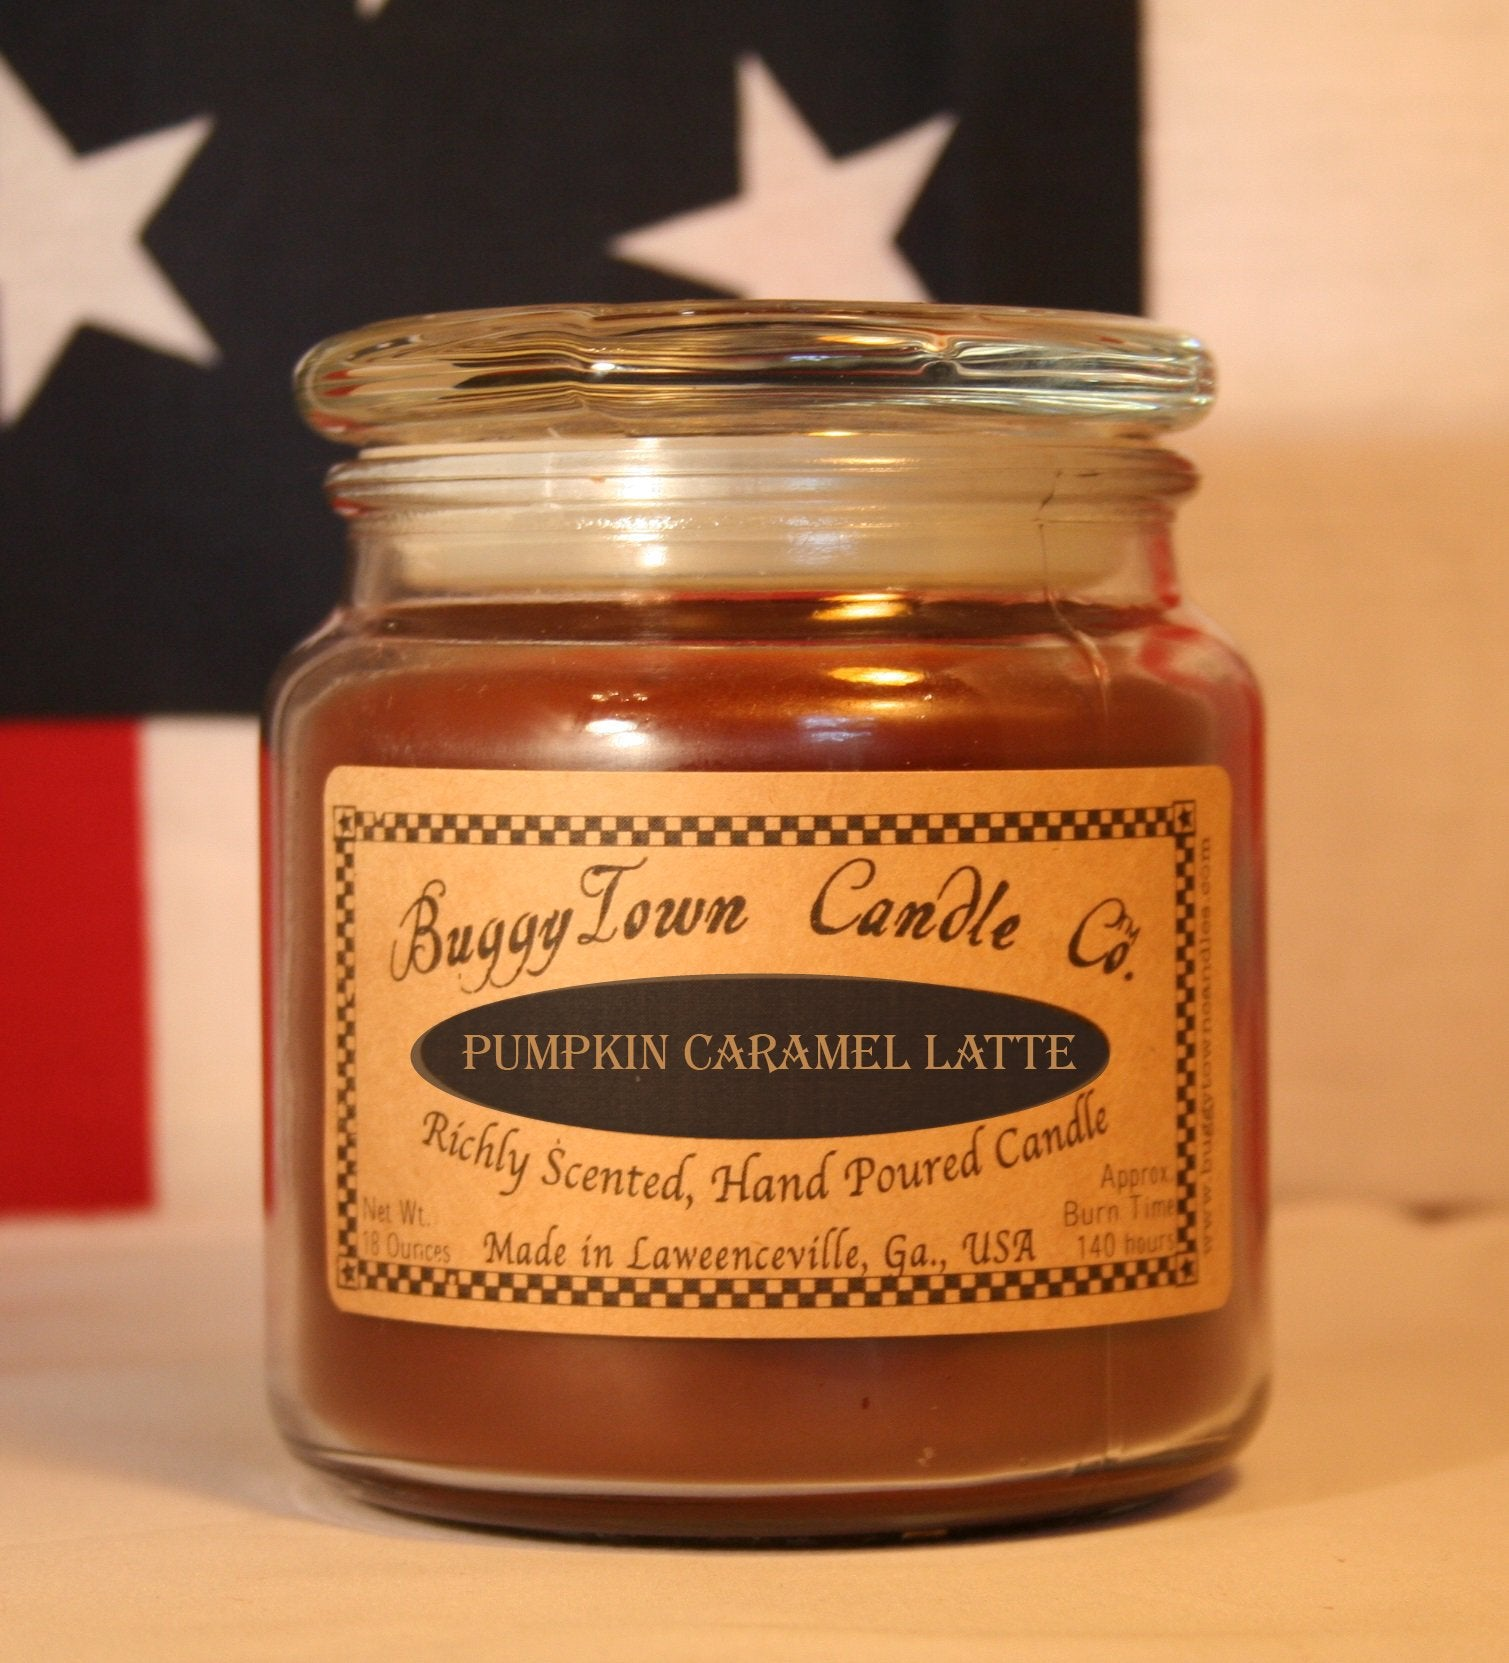 Pumpkin Caramel Latte Candles